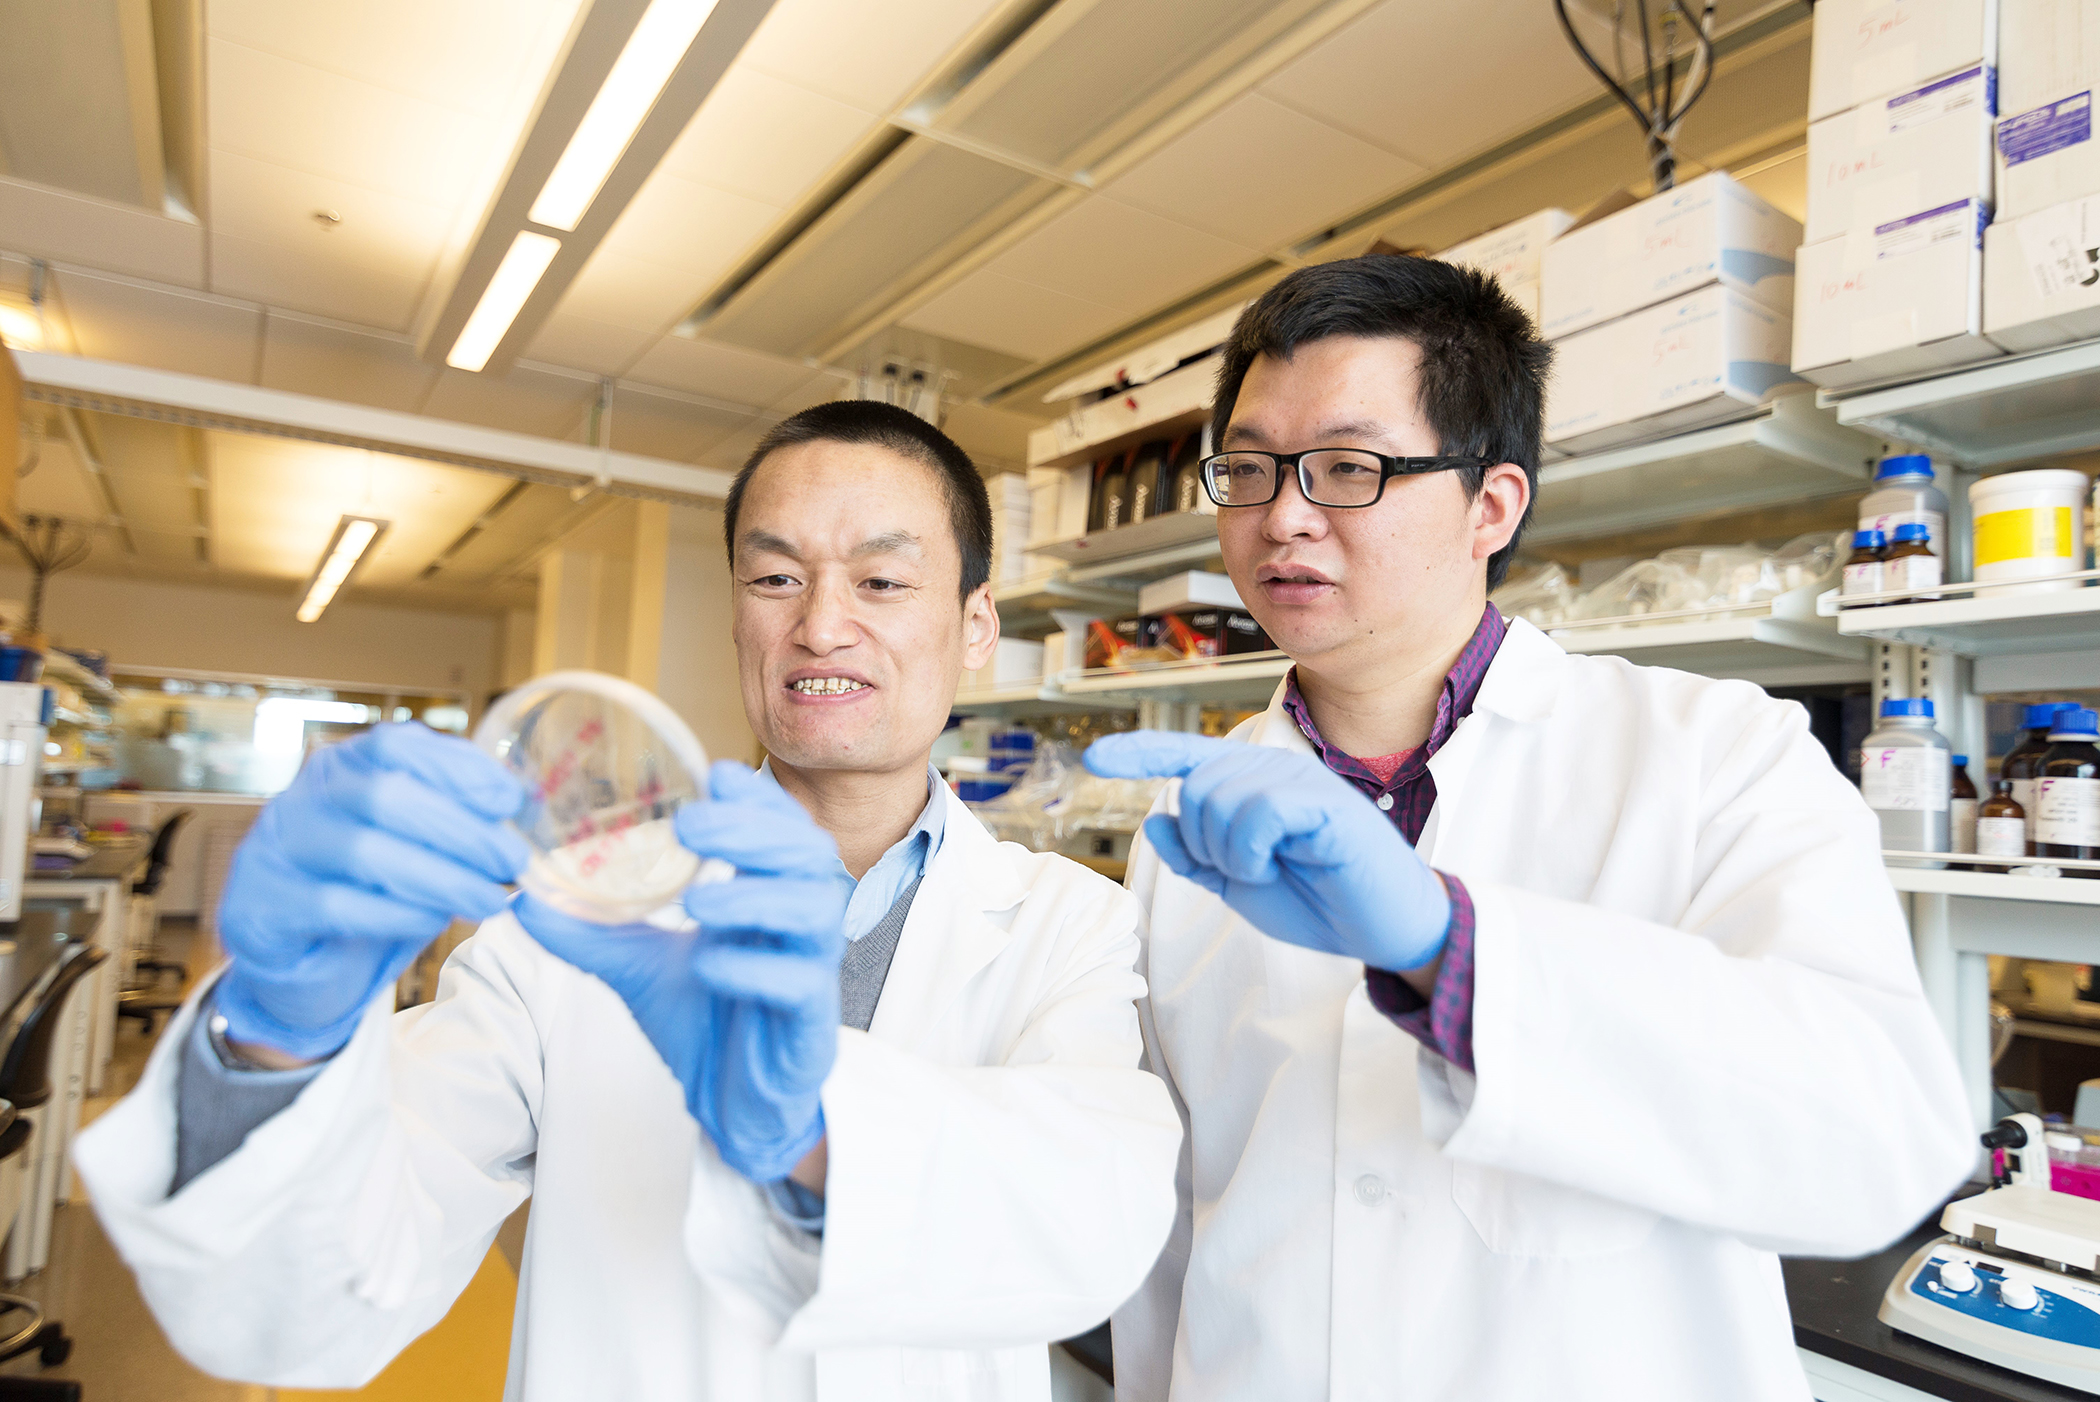 Assistant professor Zhaokang Cheng and postdoctoral fellow Peng Xia examine bacterial cultures used to grow genes of interest to their research, such as the CDK2 gene. The genes are then isolated and introduced into cardiac muscle cells to study their function.